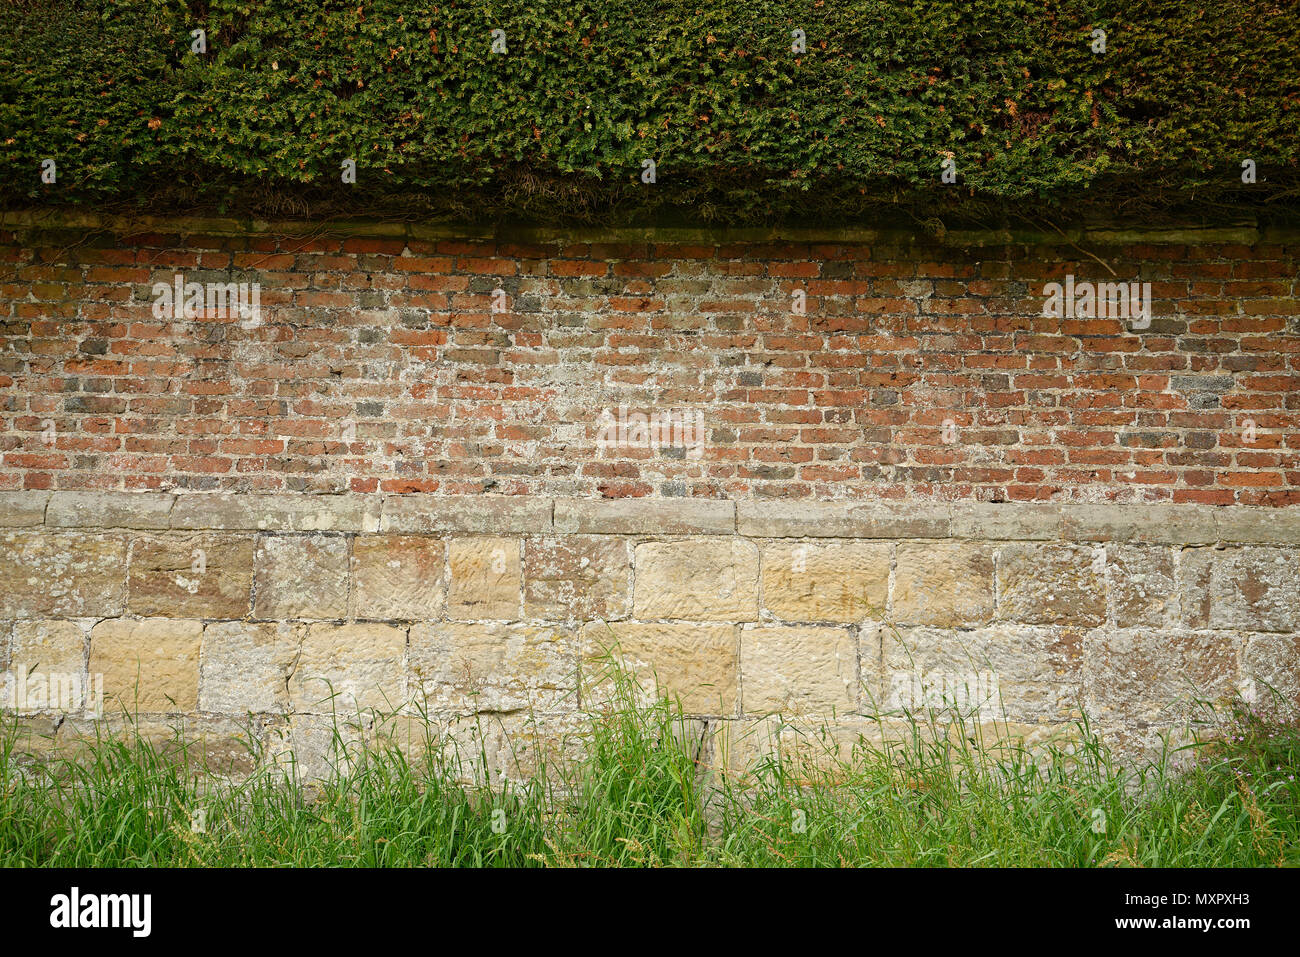 Yew hedge, brick wall and sandstone base. Three layered perimeter of property. Useful as a background for text. - Stock Image